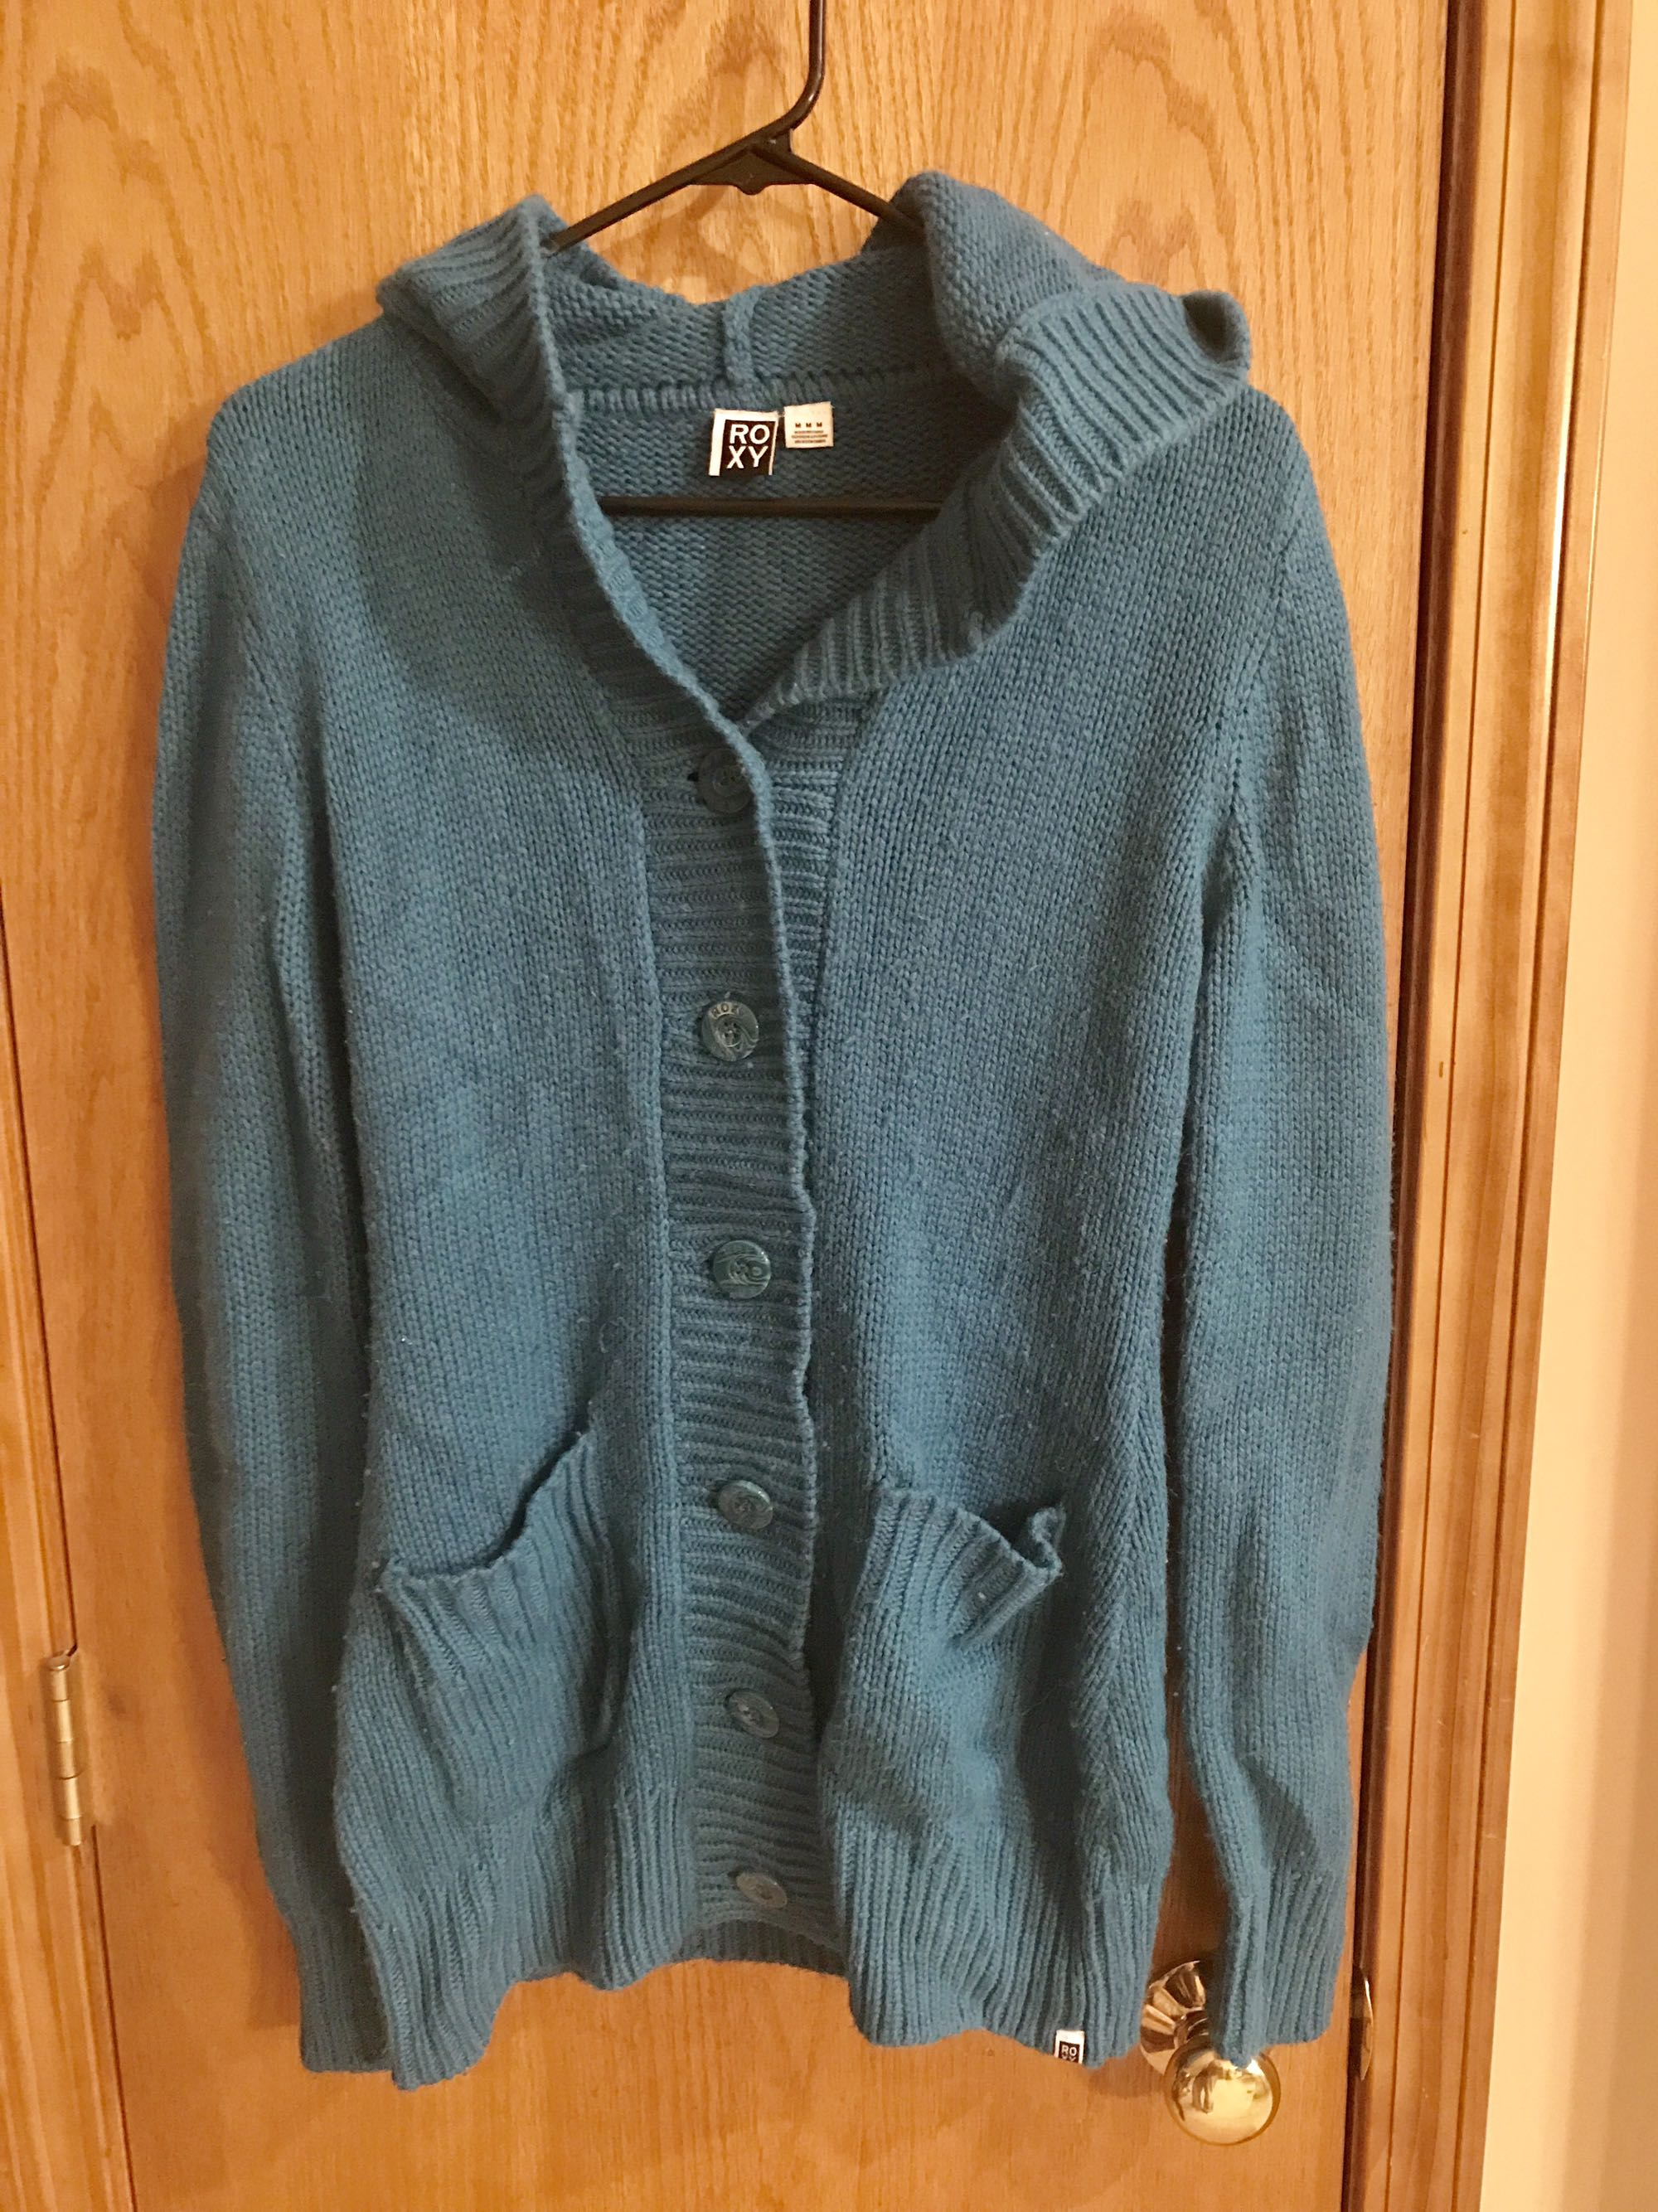 ROXY brand button up hooded sweater